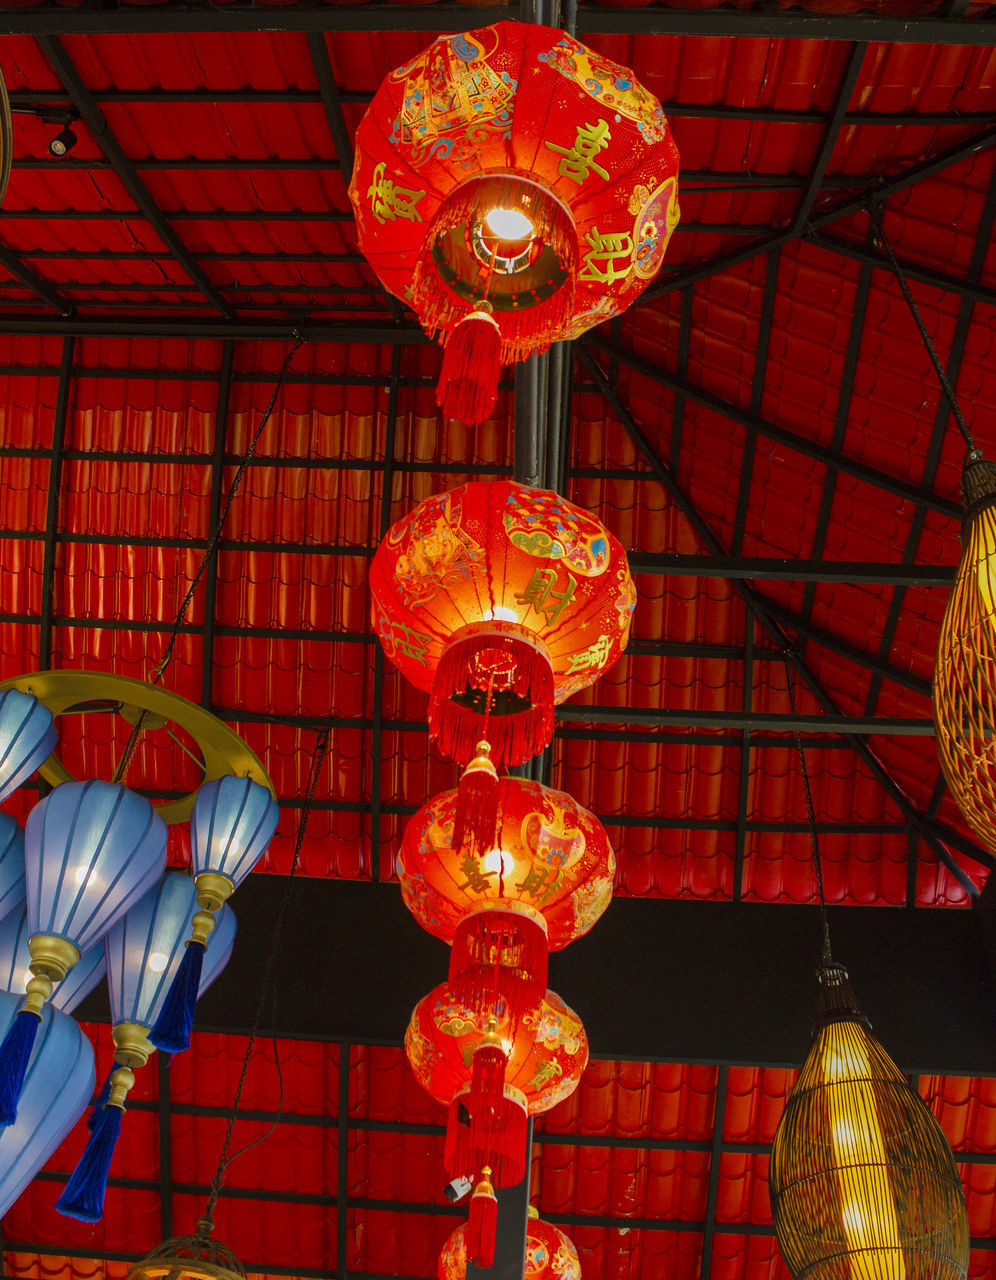 LOW ANGLE VIEW OF ILLUMINATED LANTERNS HANGING ON CEILING IN ROW